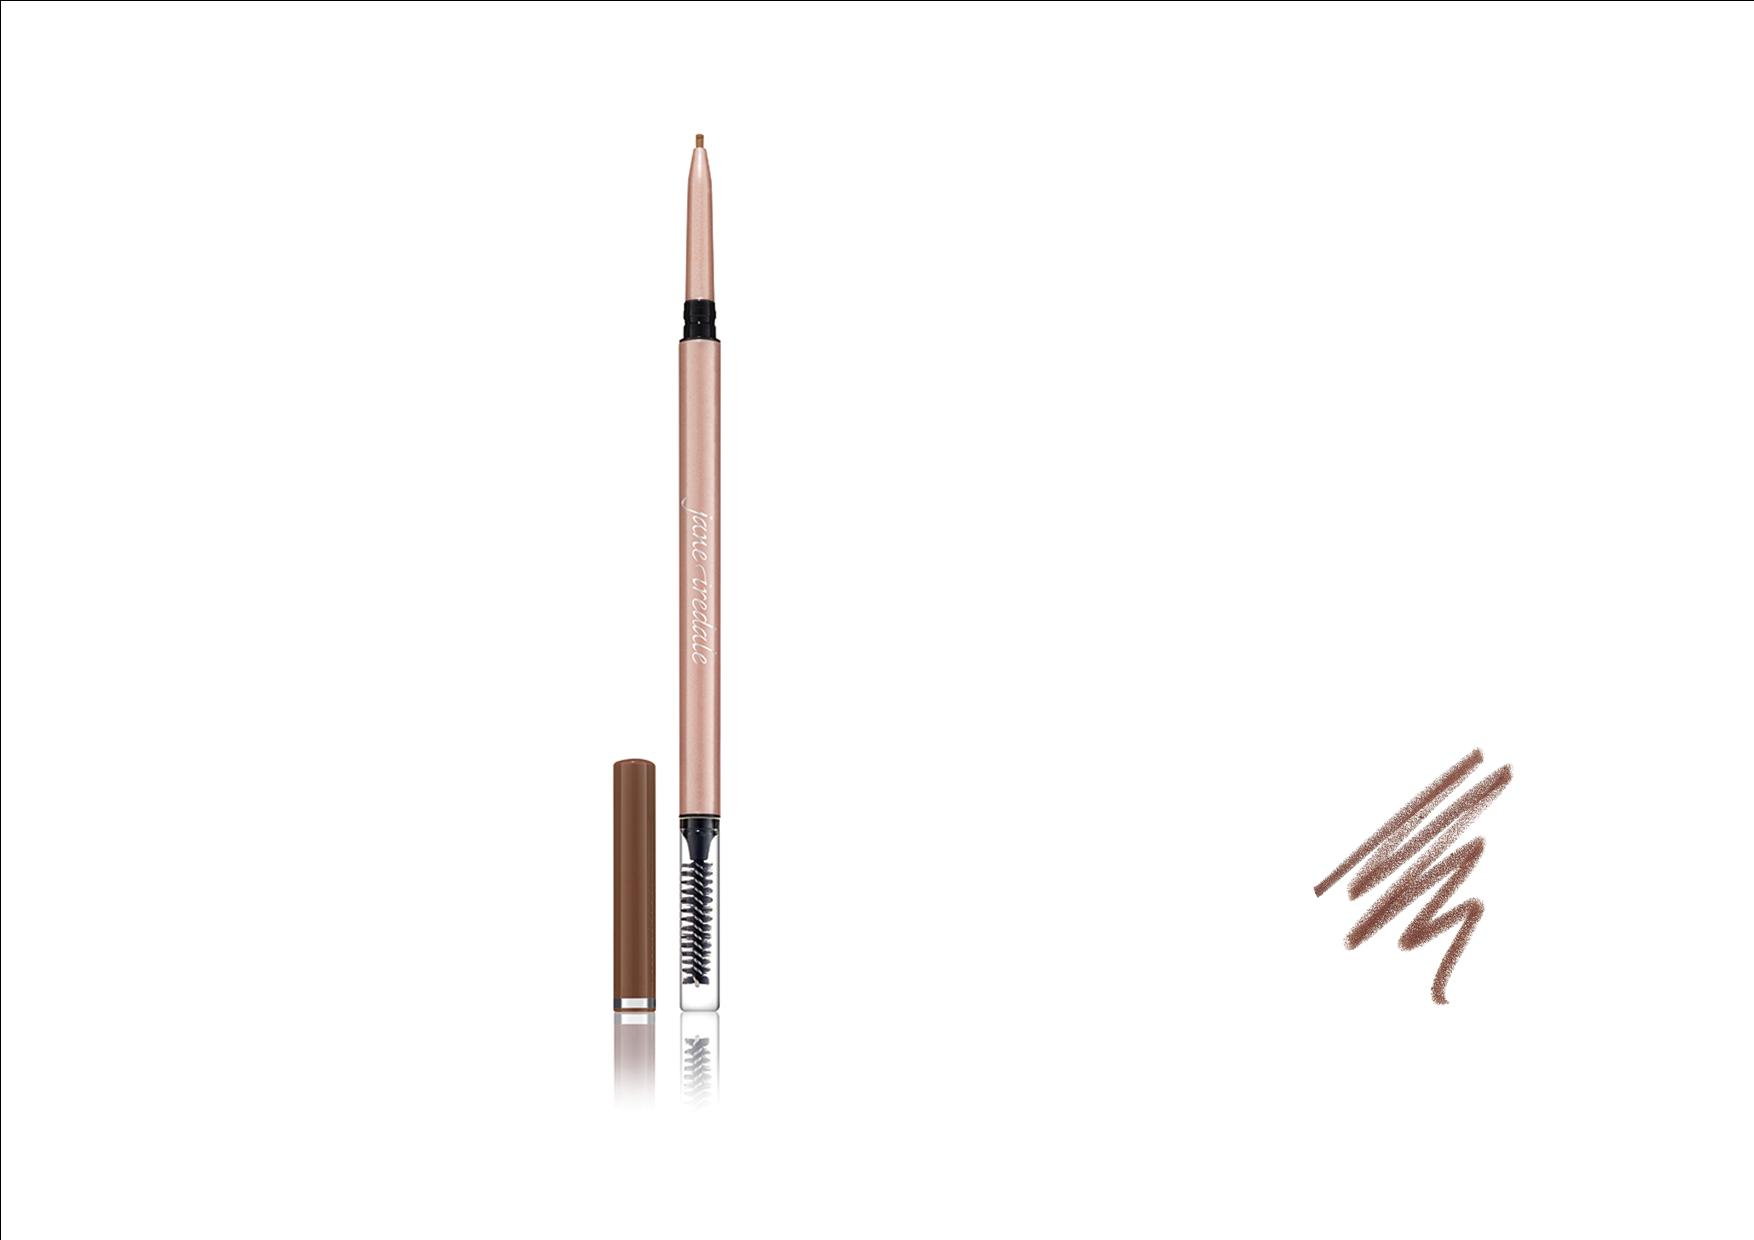 Jane Iredale Rectractable Brow Pencil Ash Blonde